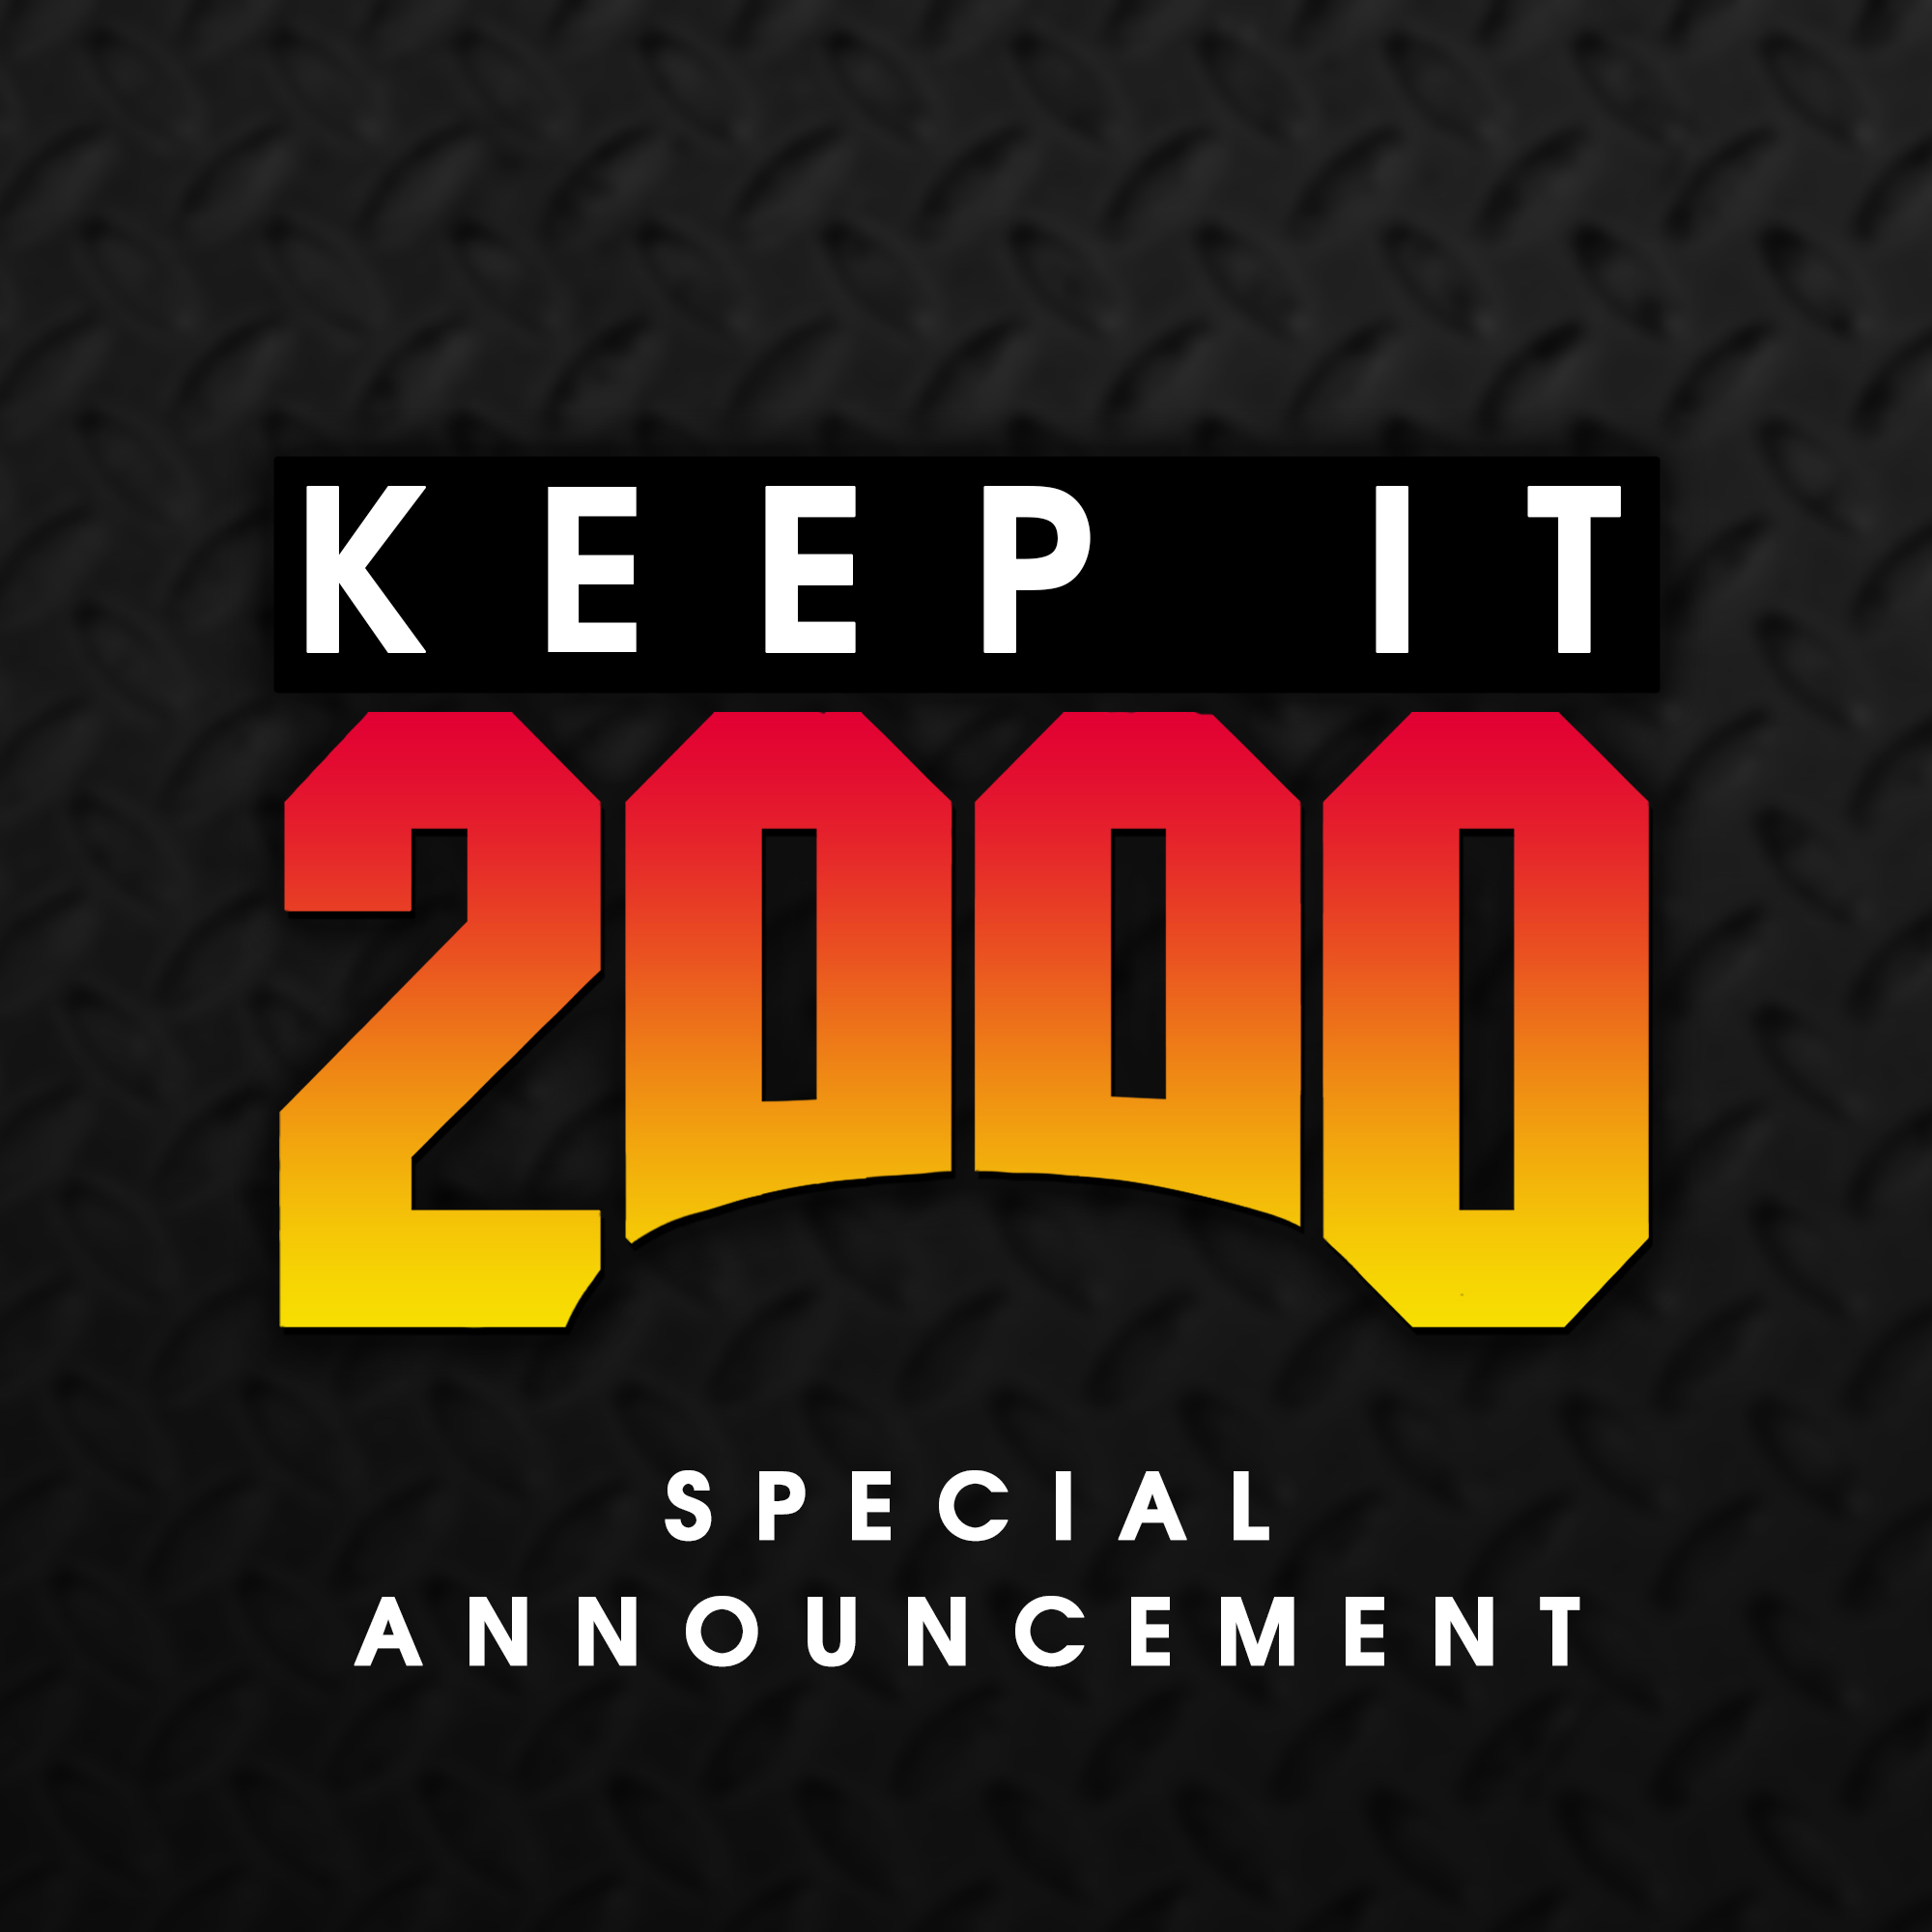 KEEP IT 2000 SPECIAL ANNOUNCEMENT